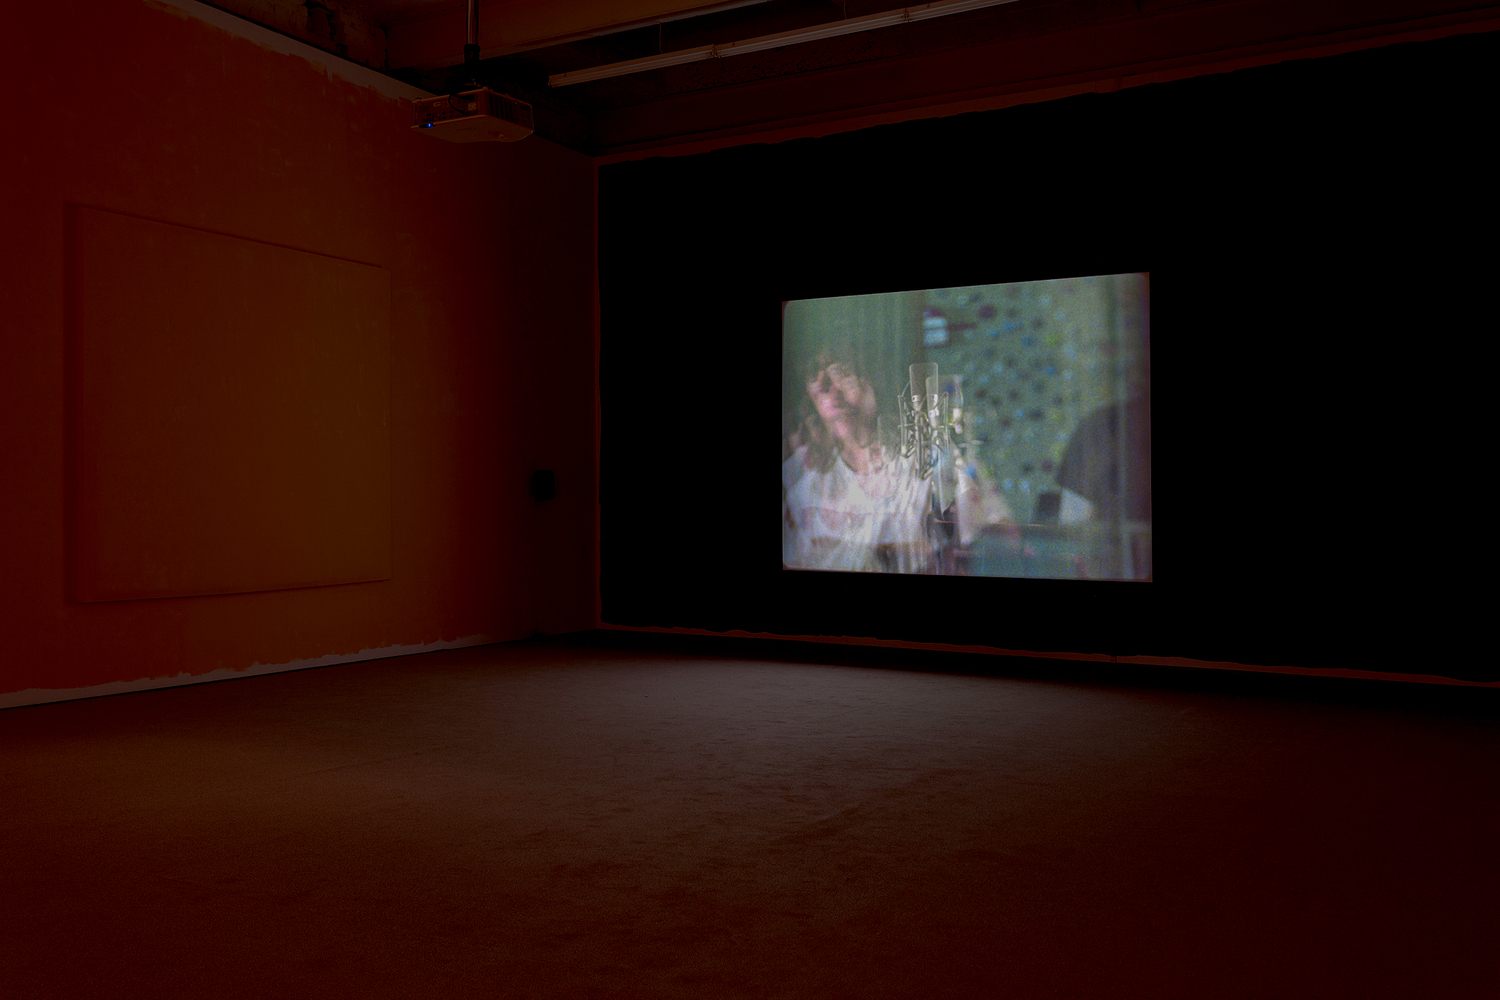 Sue Tompkins, 'Country Grammar' - a film by Luke Fowler, installation view, The Modern Institute, Aird's Lane, 2017